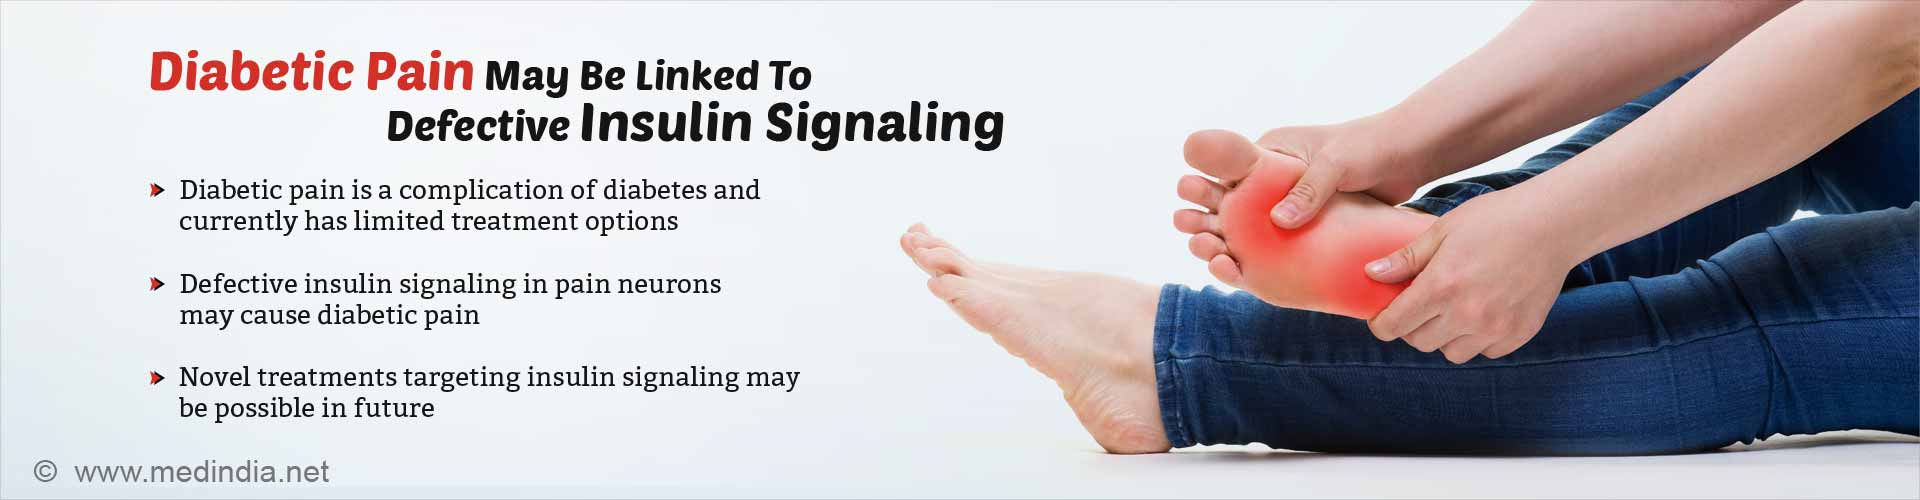 Disrupted Insulin Signaling Causes Pain Hypersensitivity In Diabetes